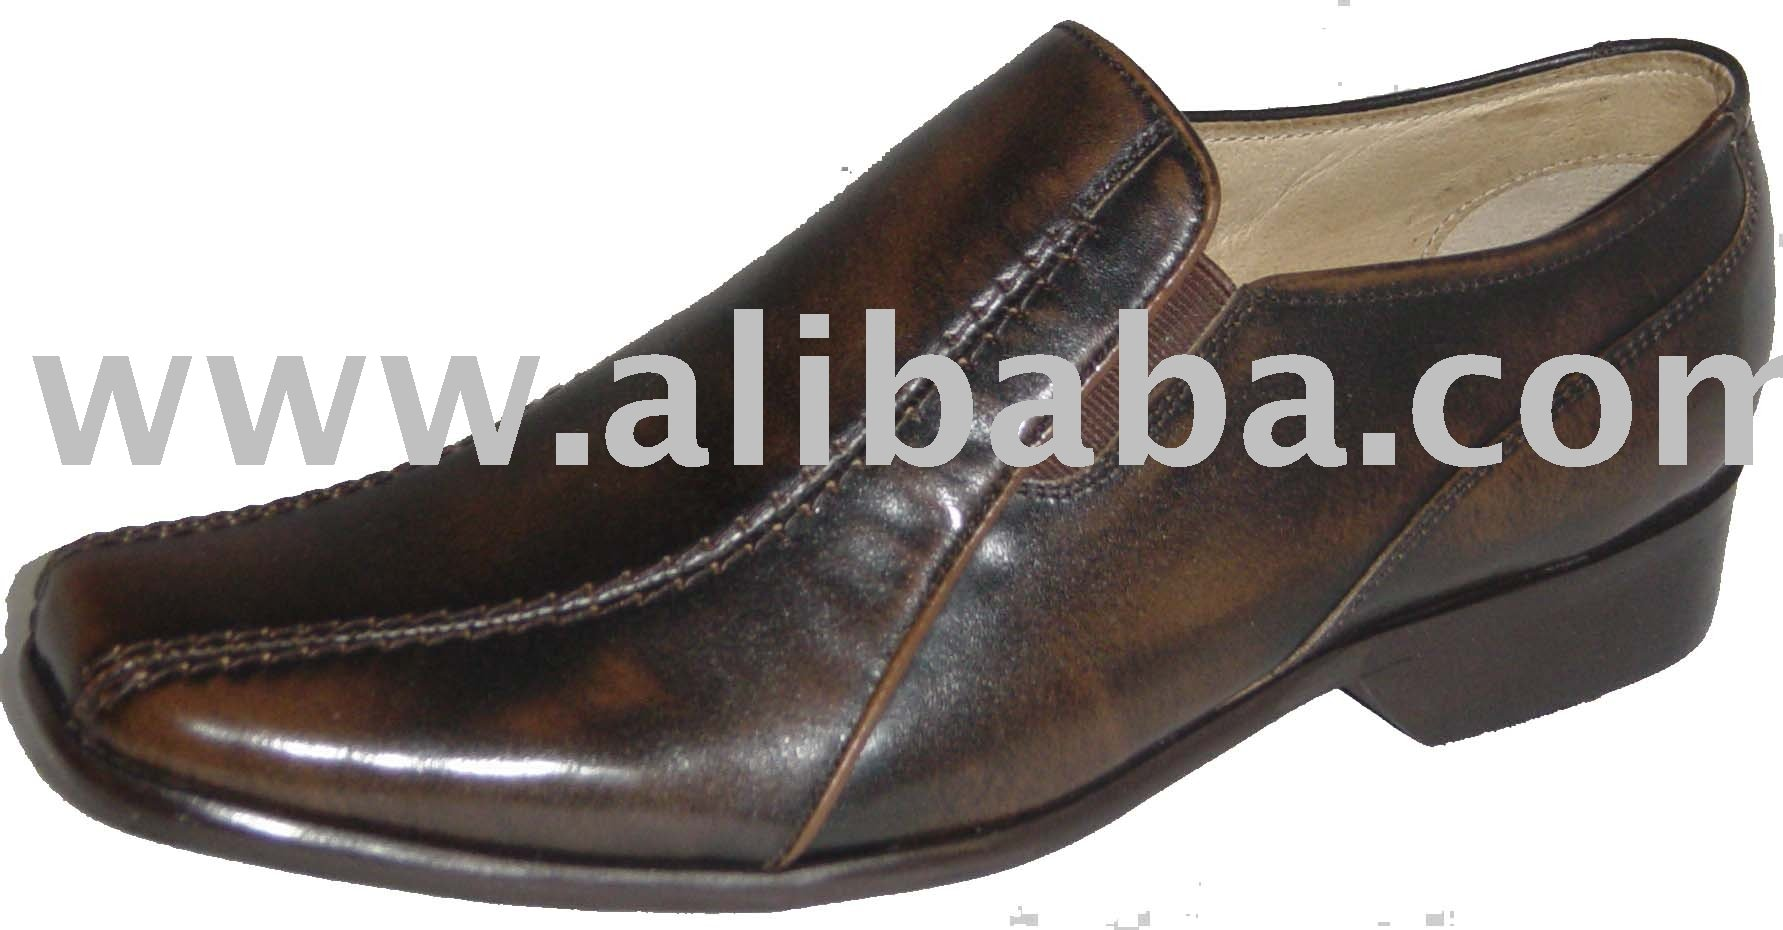 s dress shoes buy shoes product on alibaba